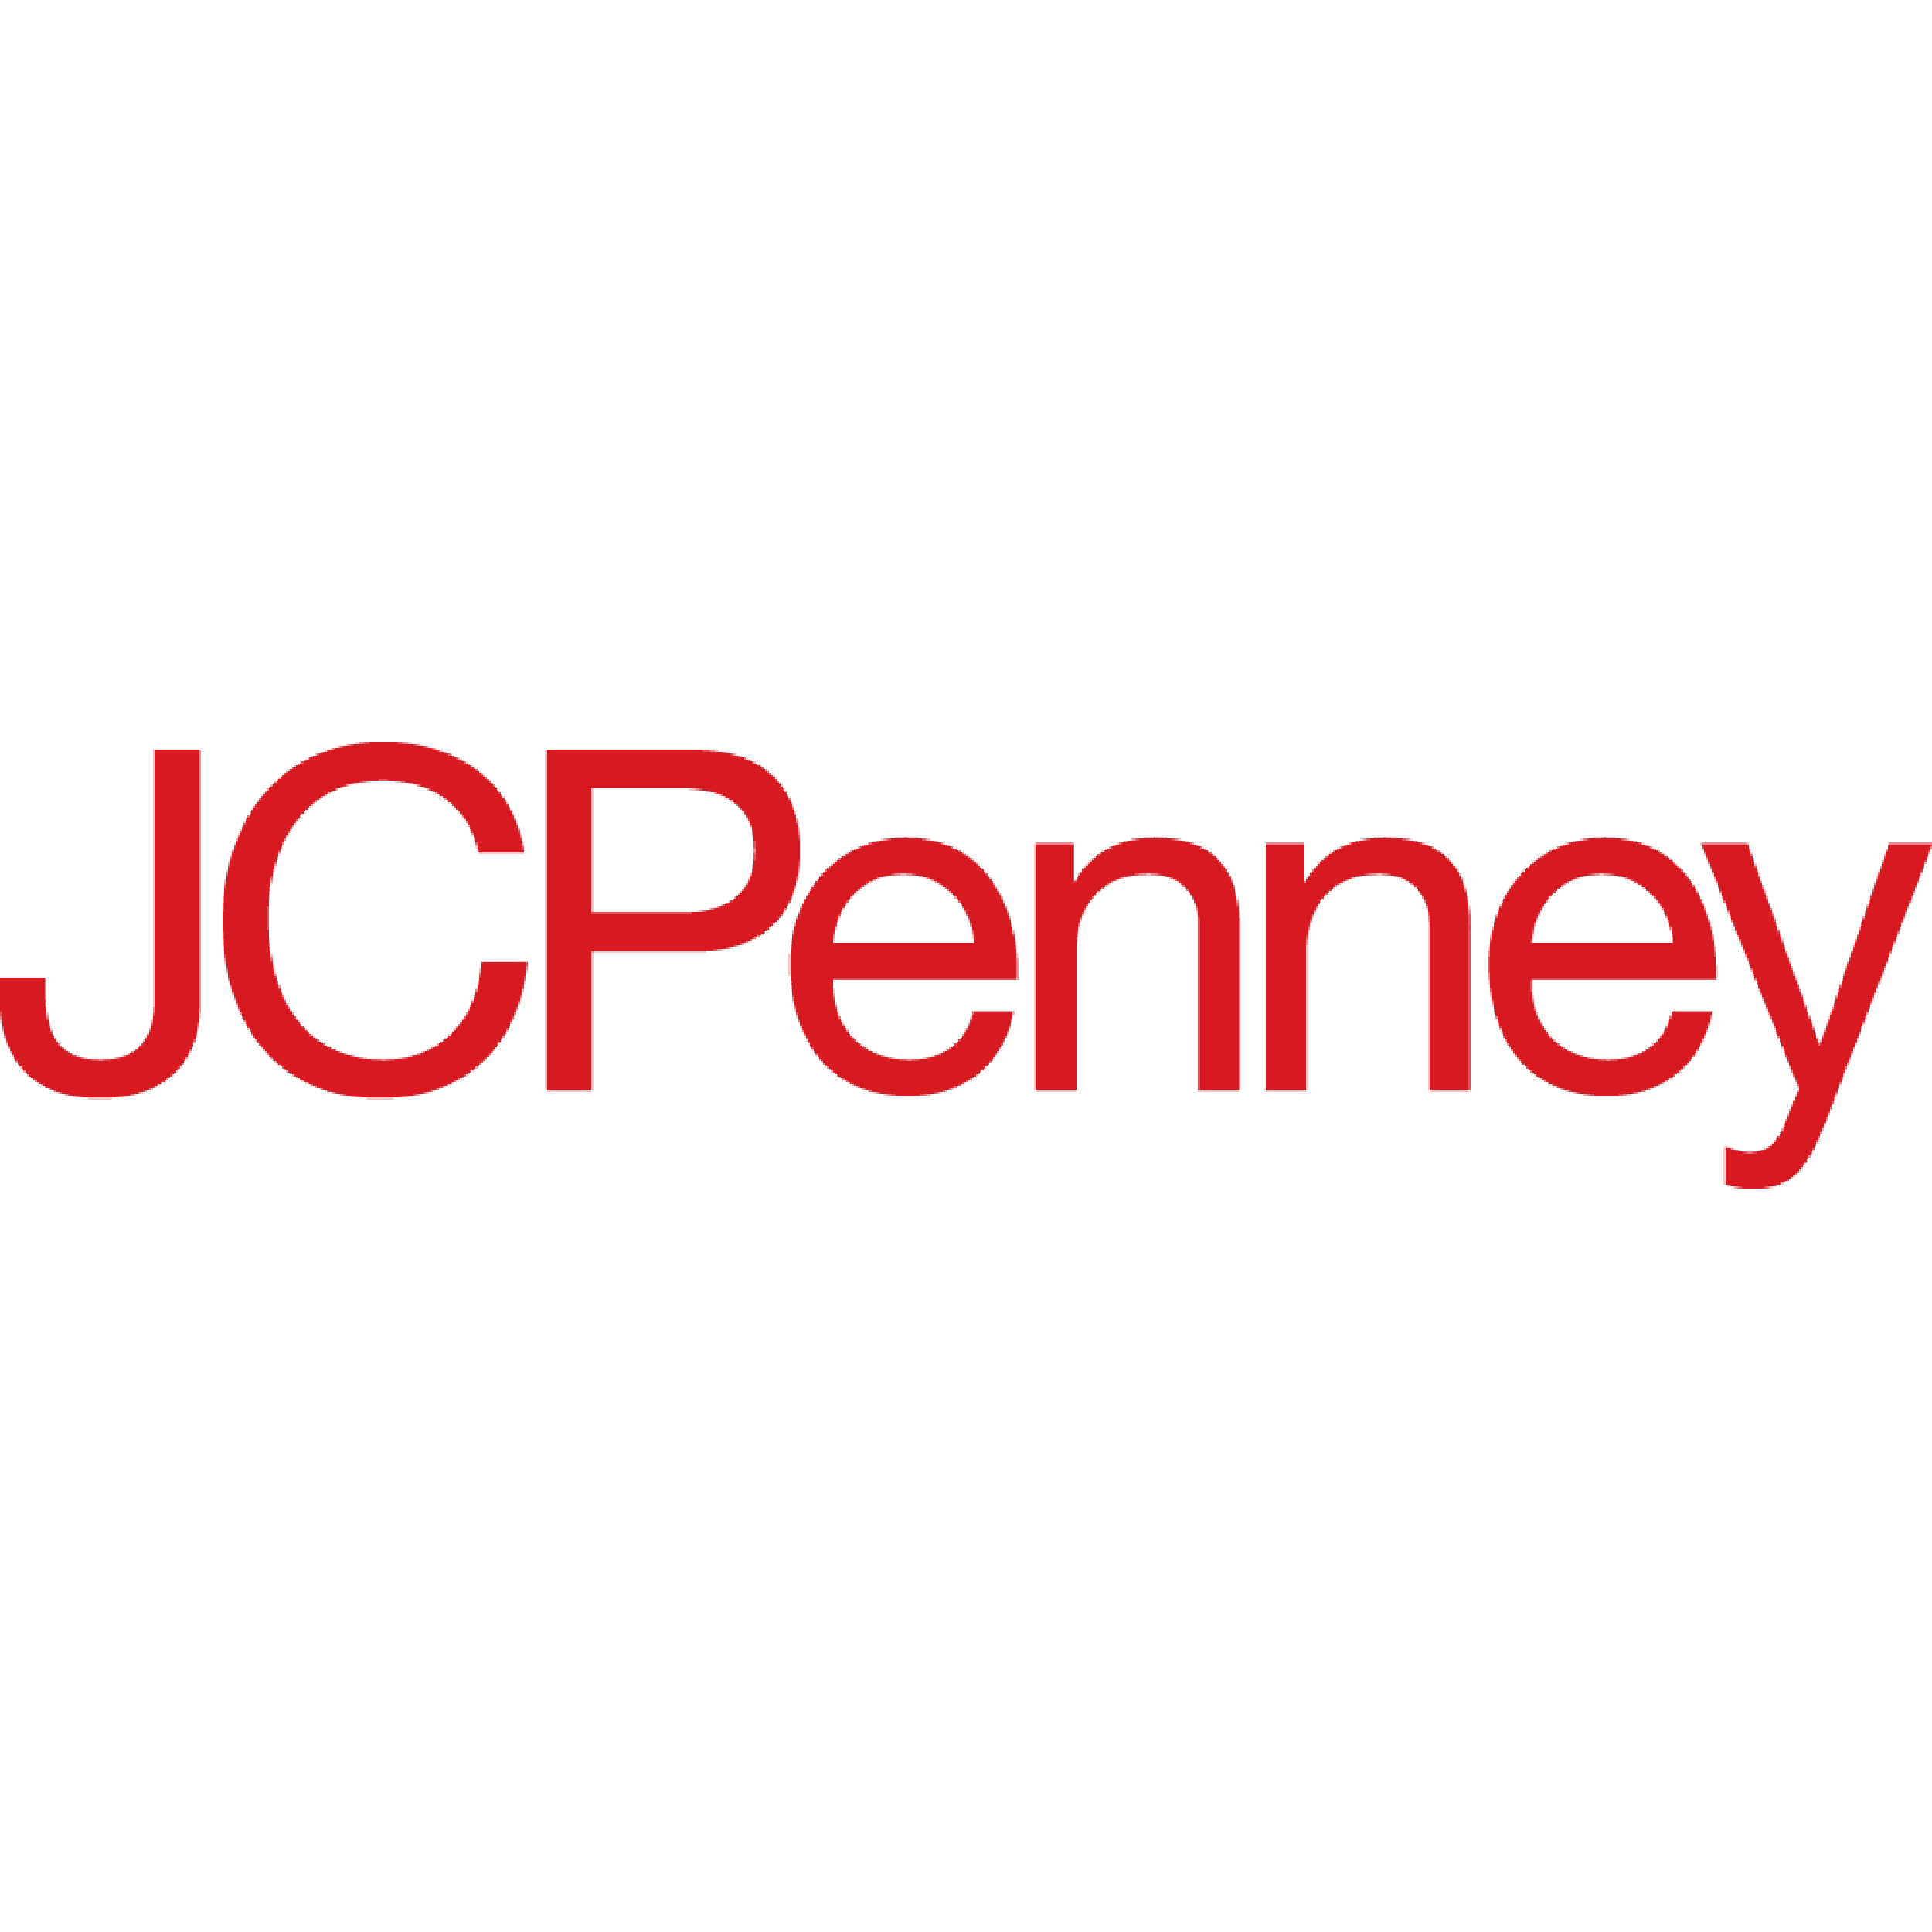 JCPenney - West Mifflin, PA - Department Stores